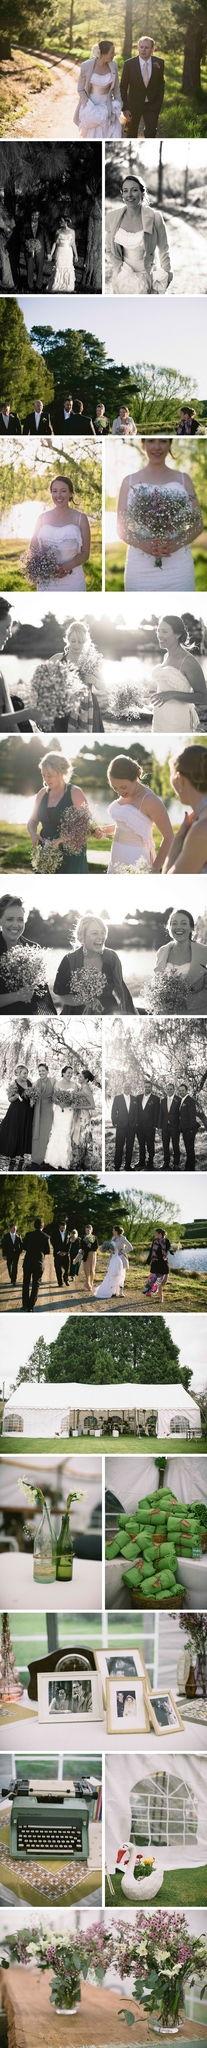 Gundaroo Farm Wedding Photos